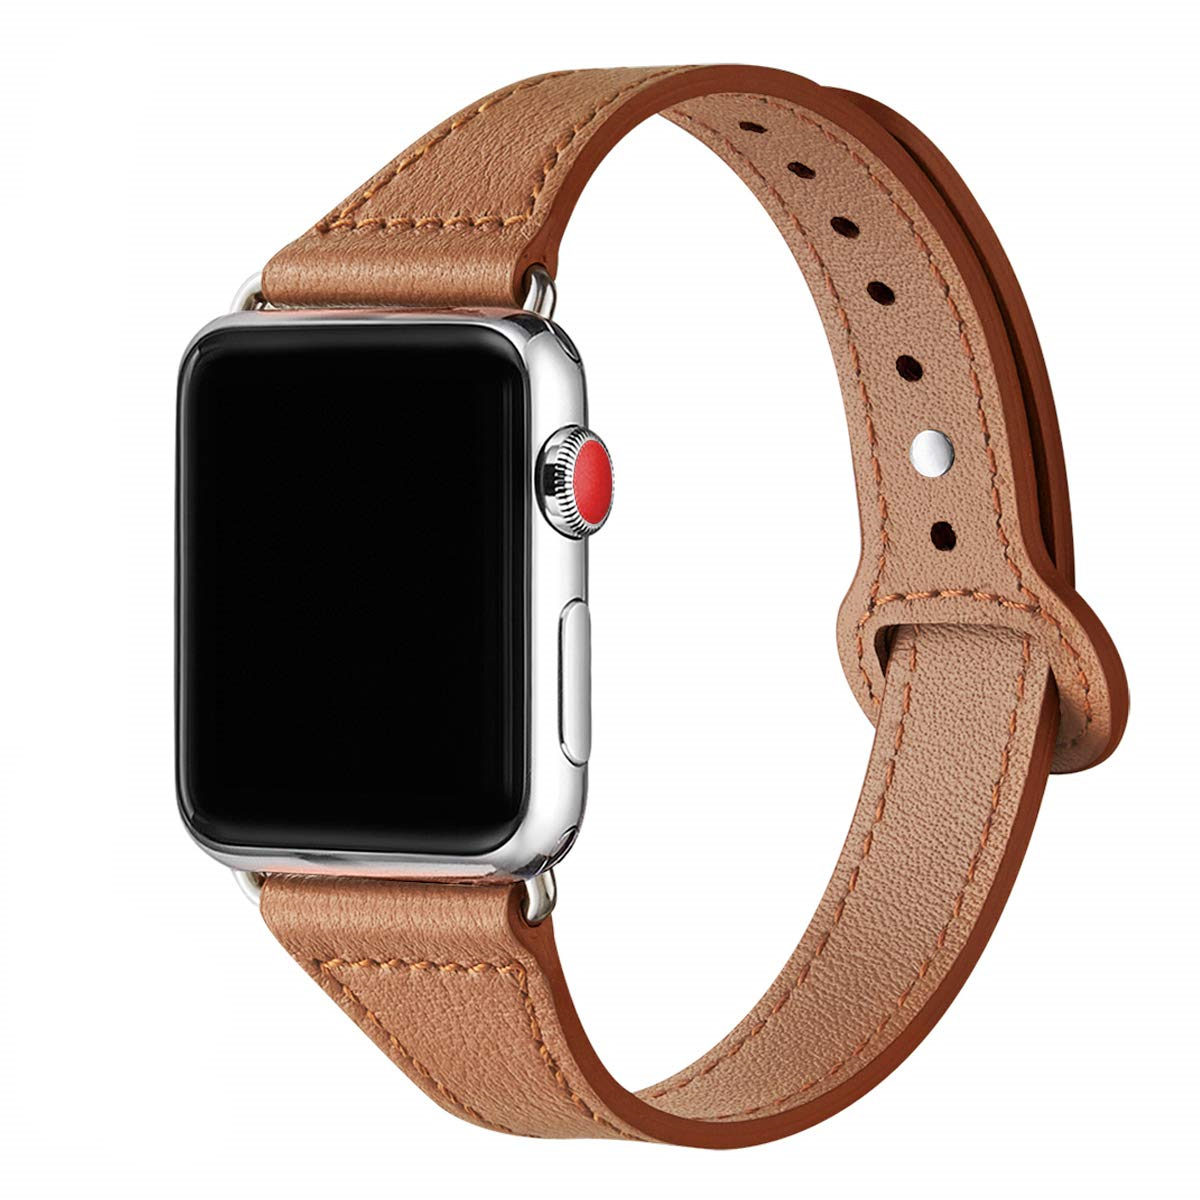 Genuine Leather Loop Band For Apple Watch 38mm 42mm IWatch 5 Band 44mm 40mm Slim Bracelet Strap Apple Watch 3/4/2/1 40 44 38 Mm